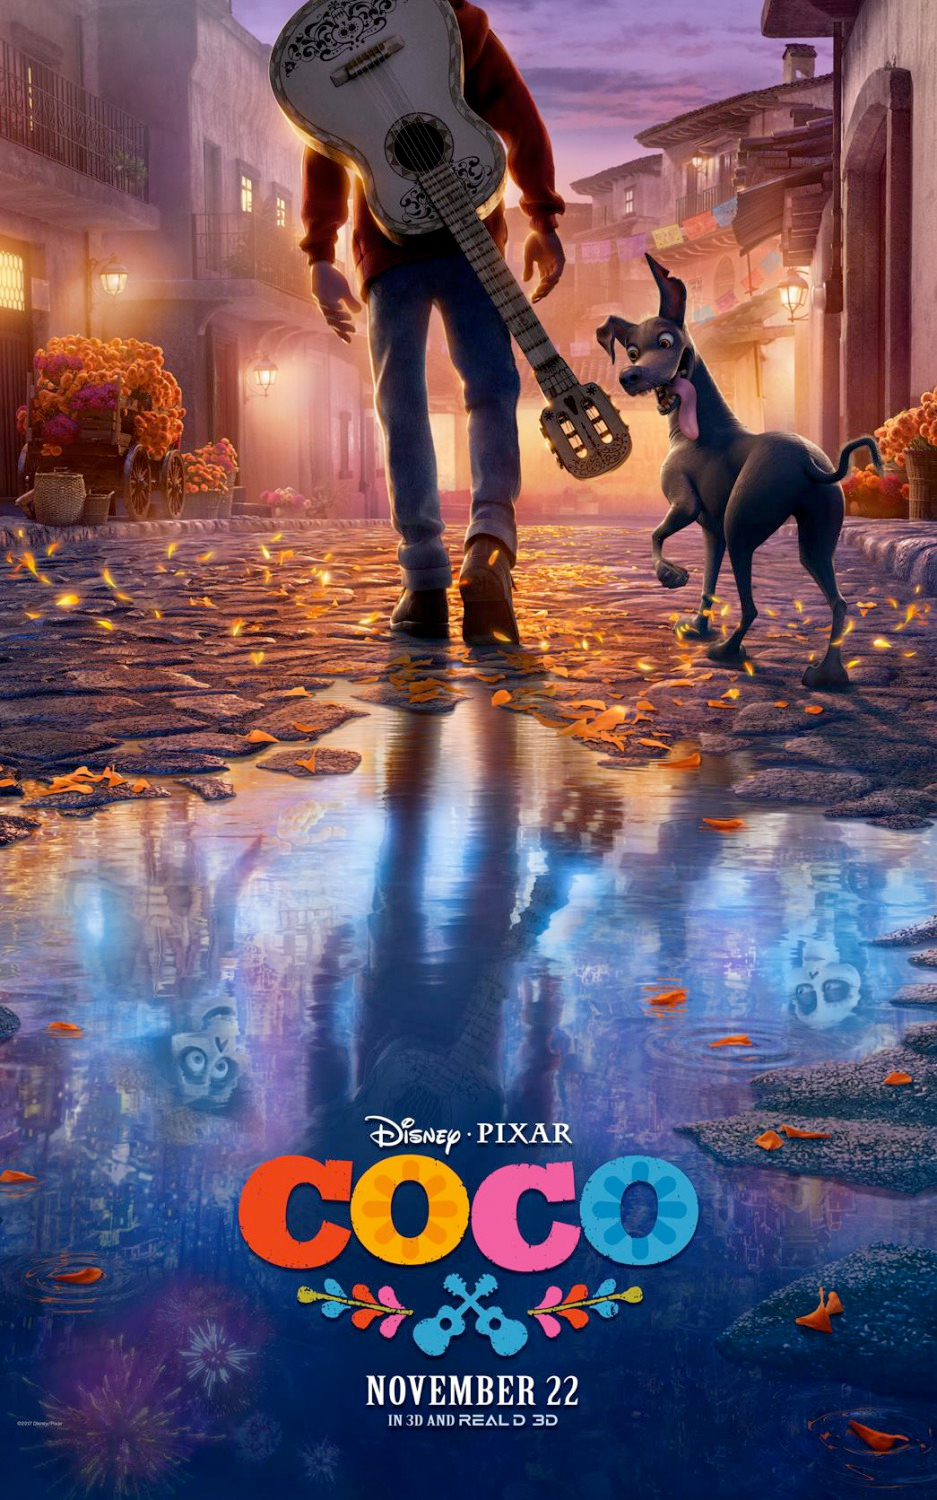 coco posters poster